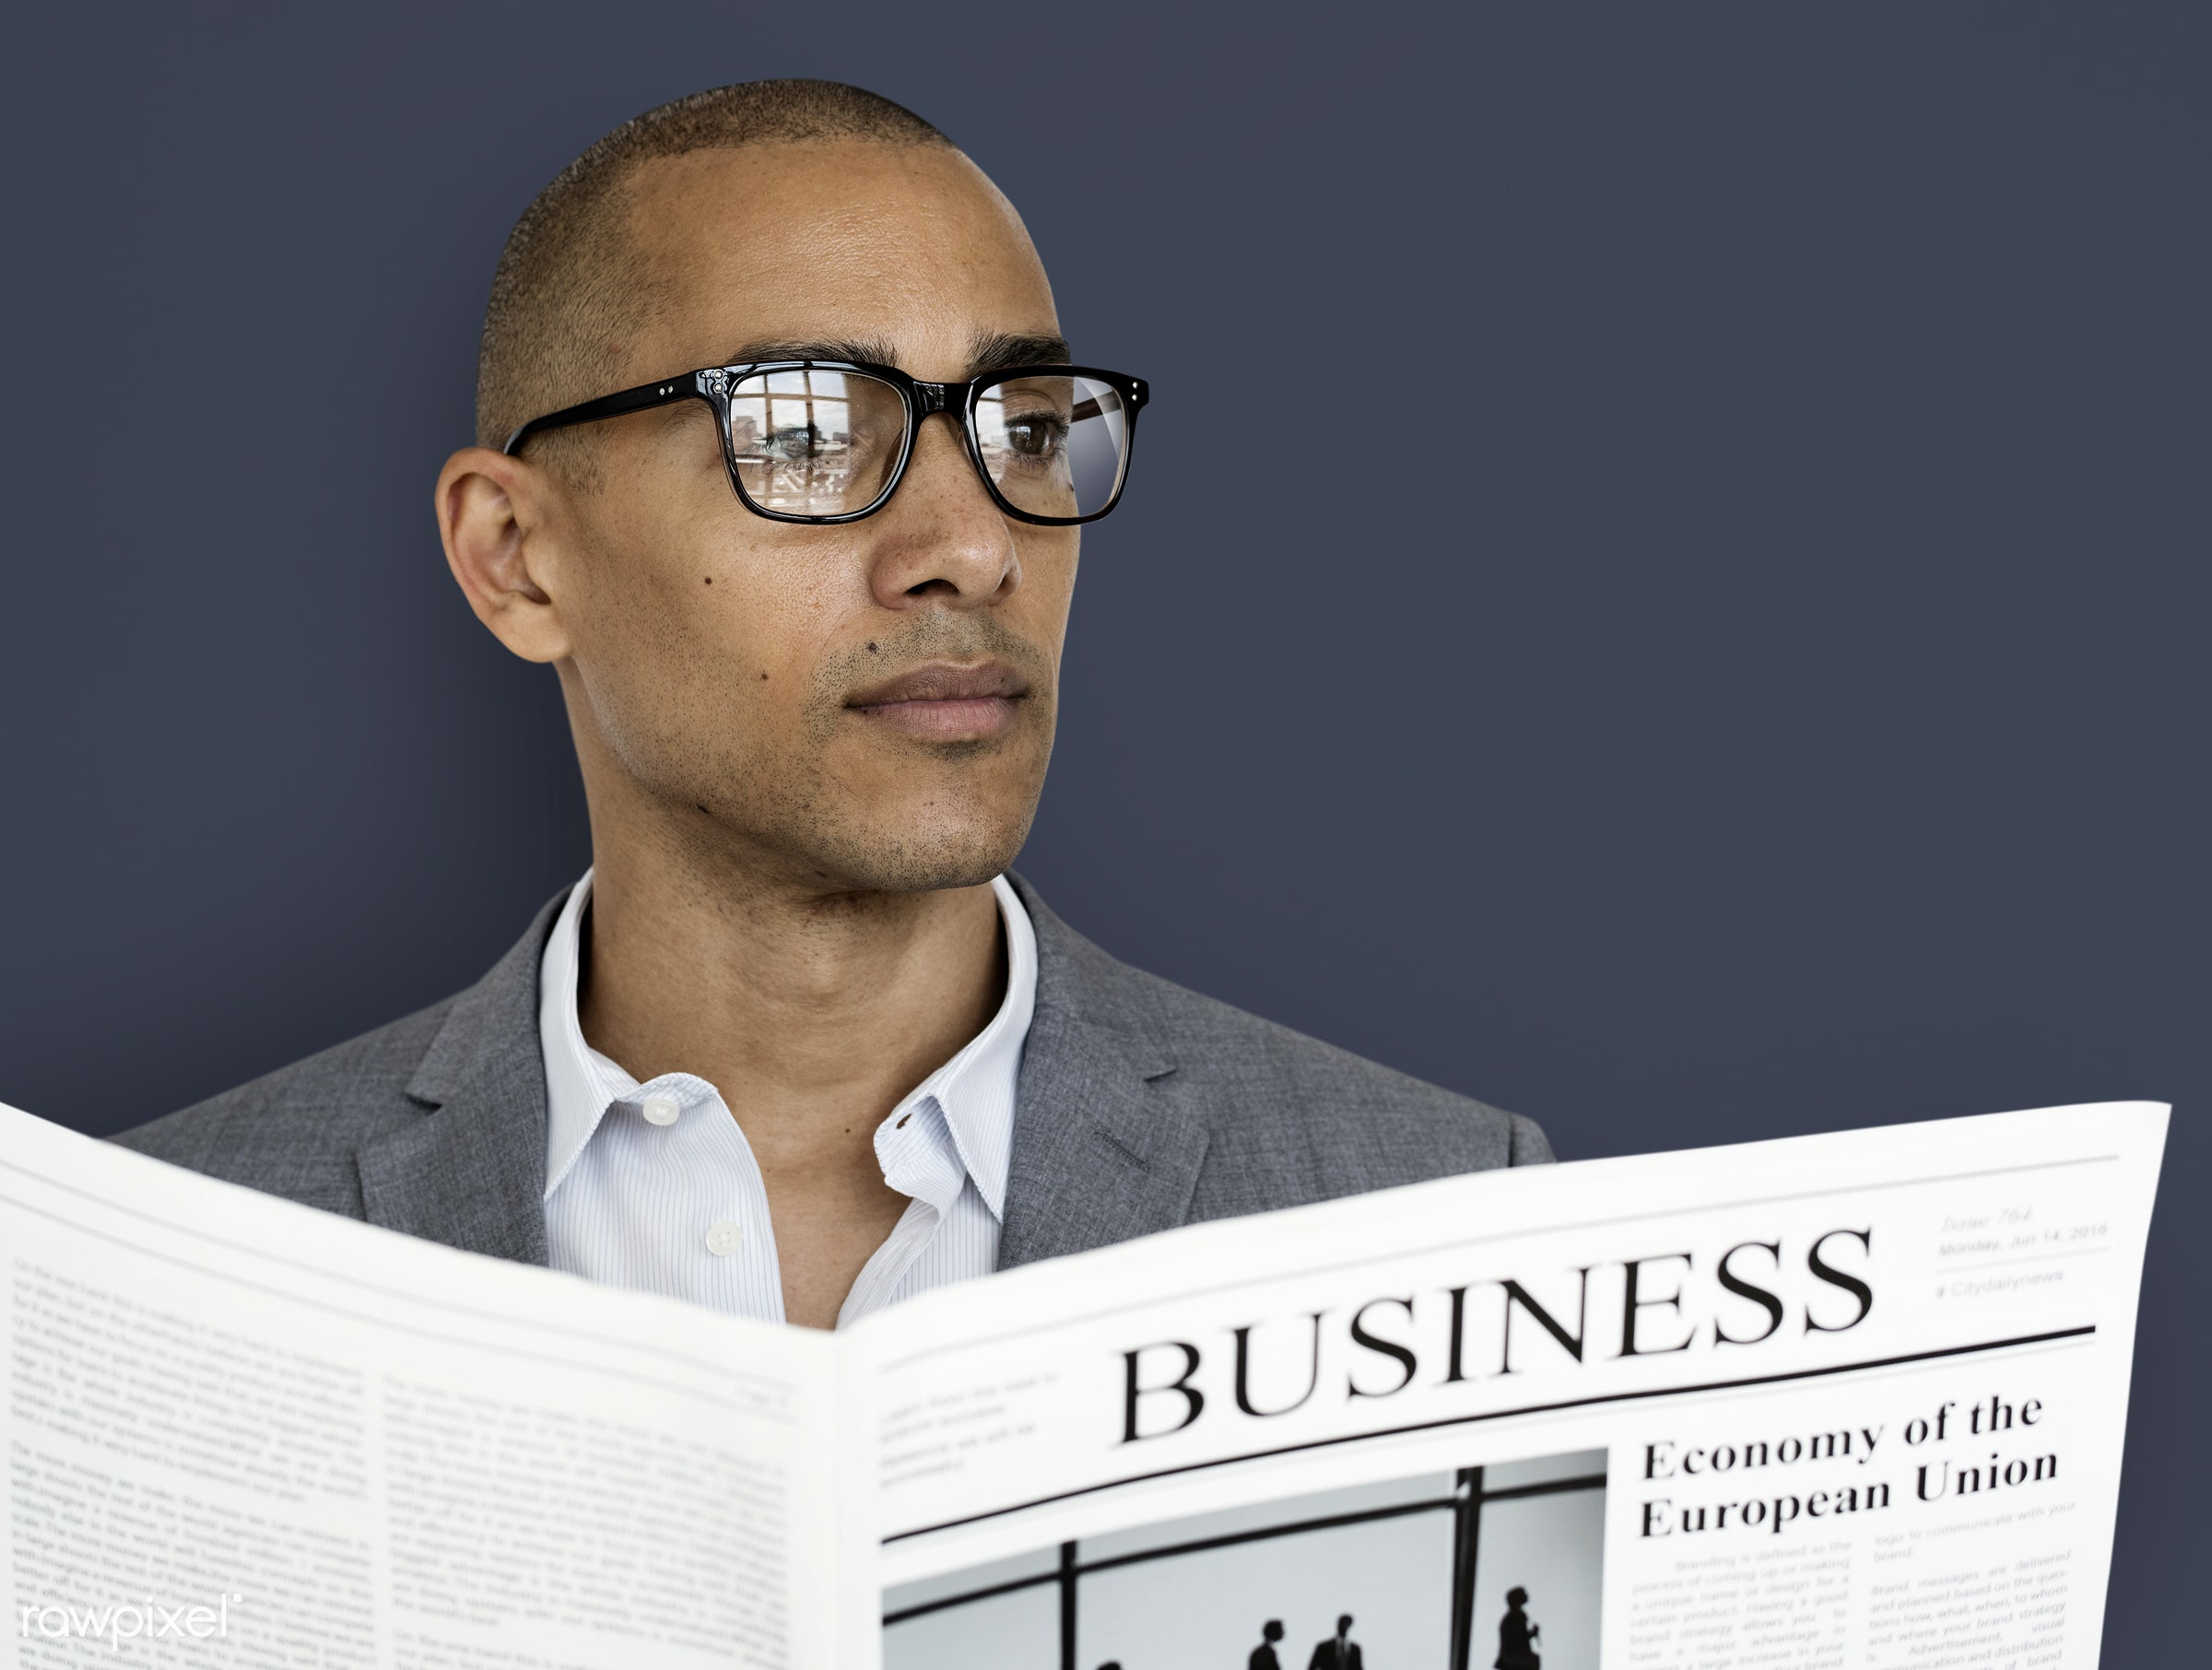 studio, expression, reading, person, business newspaper, business wear, business dressing, formal dressing, people, business...